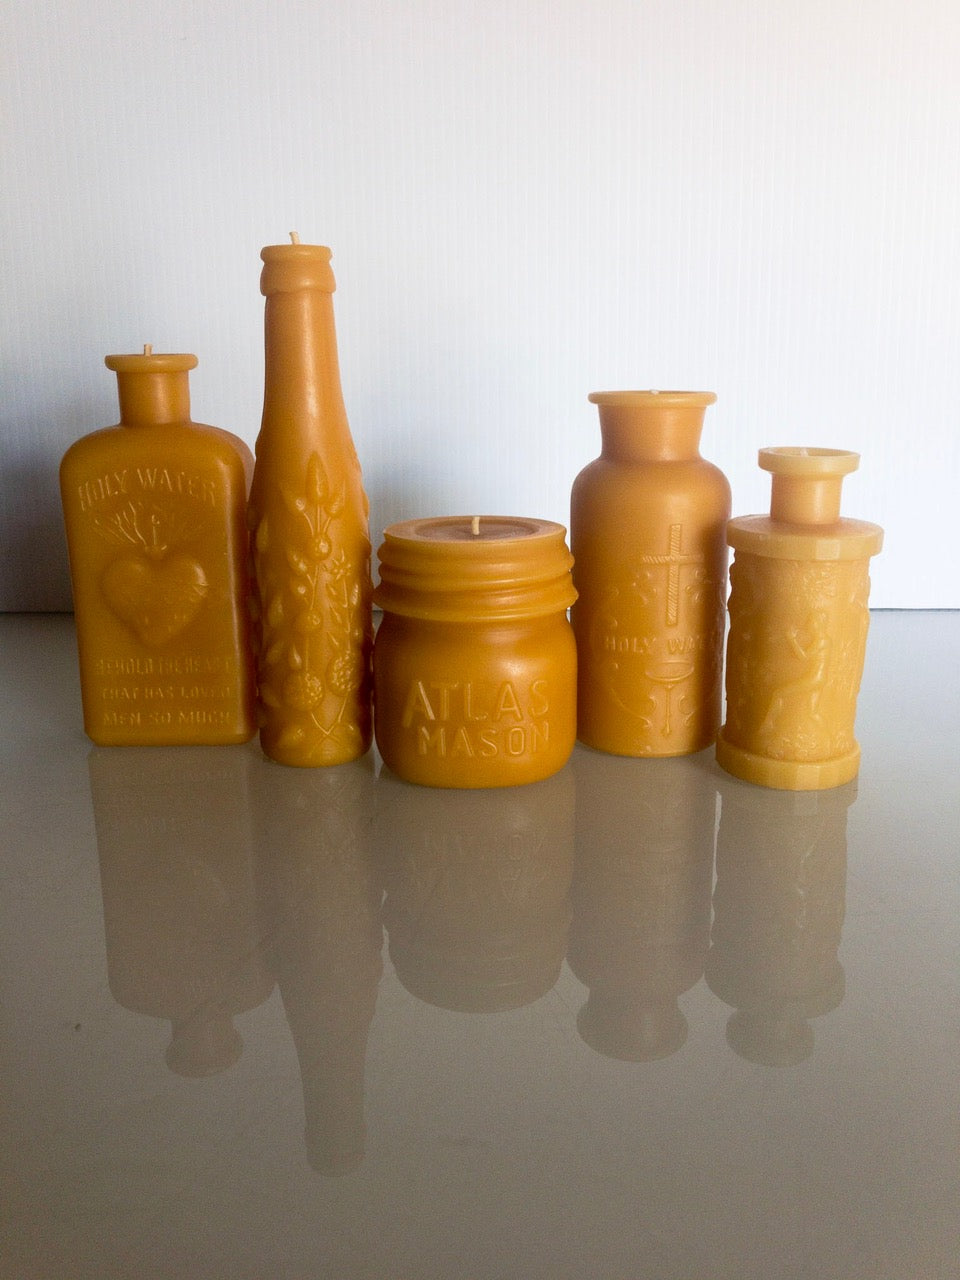 Beeswax Candles (Assorted Sizes)